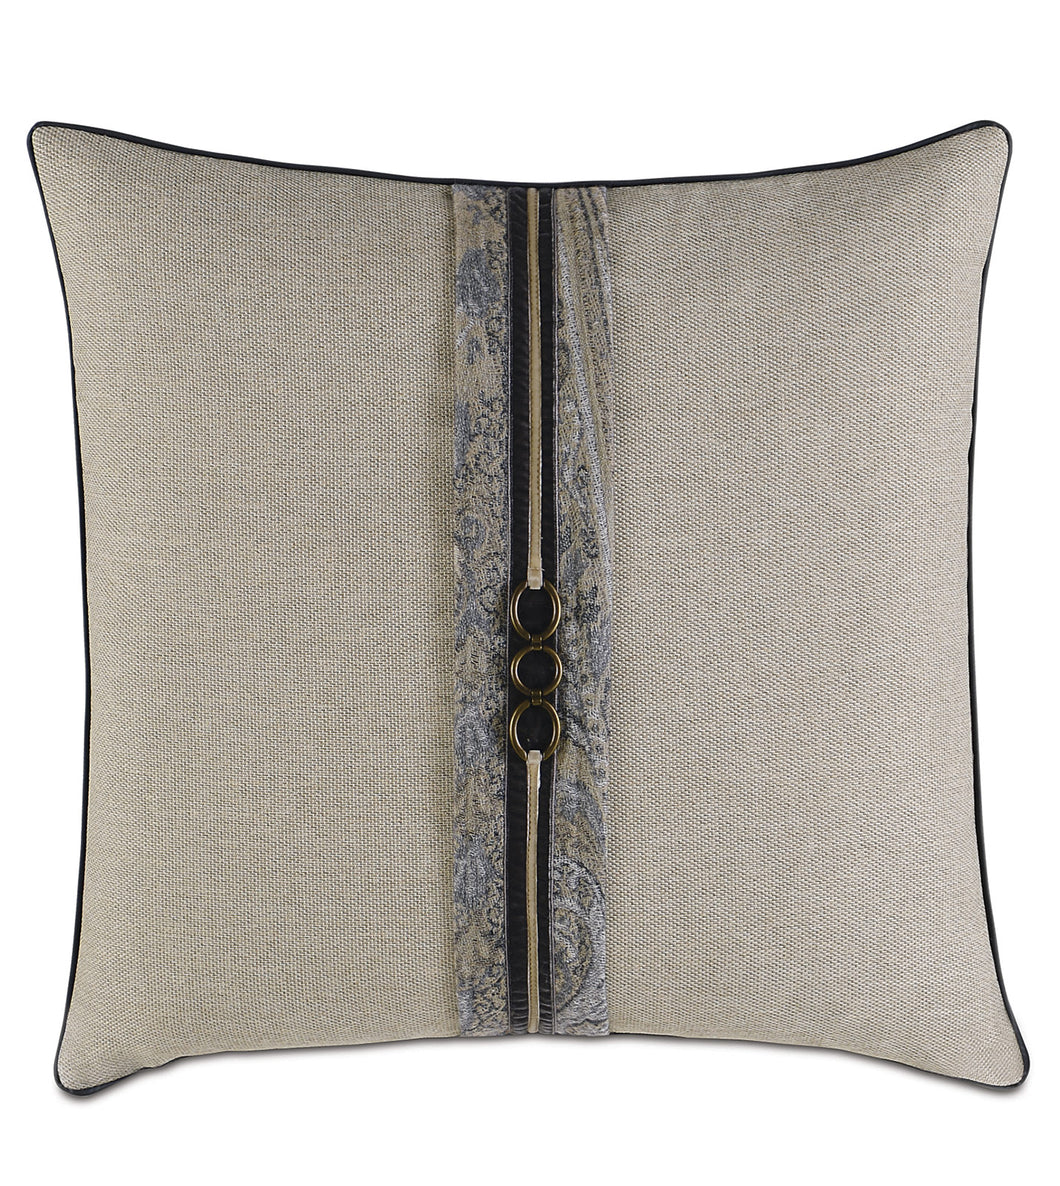 Reign Cord Trim Accent Pillow in Beige 20